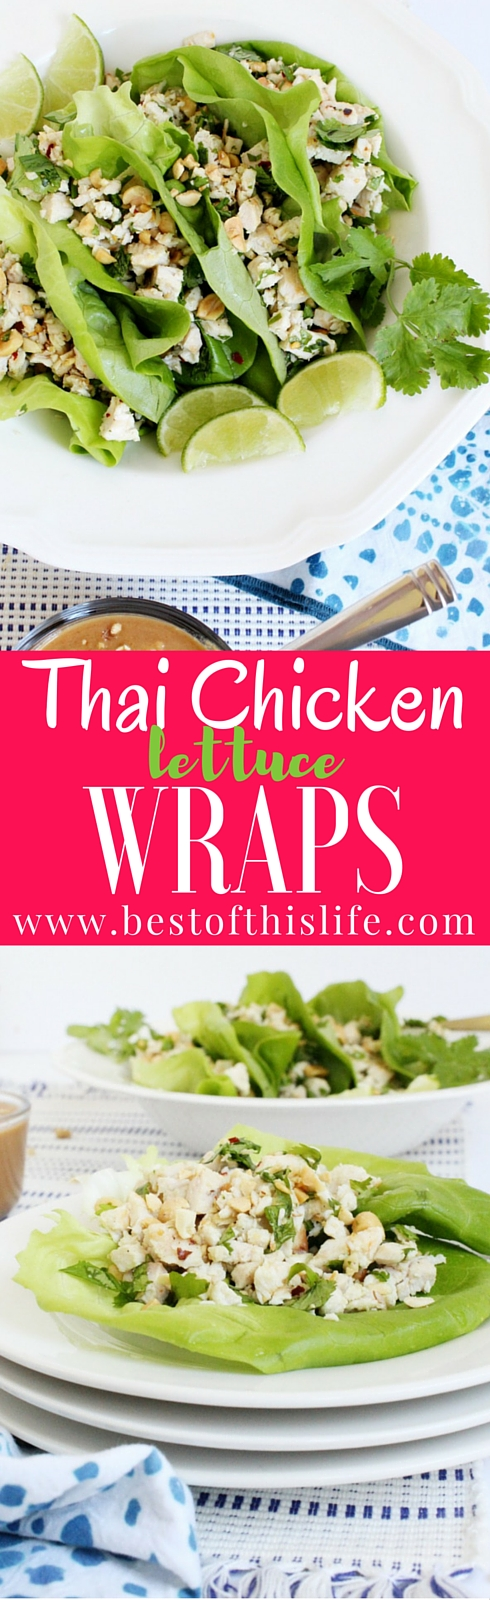 Thai Chicken Lettuce Wraps with Peanut Sauce